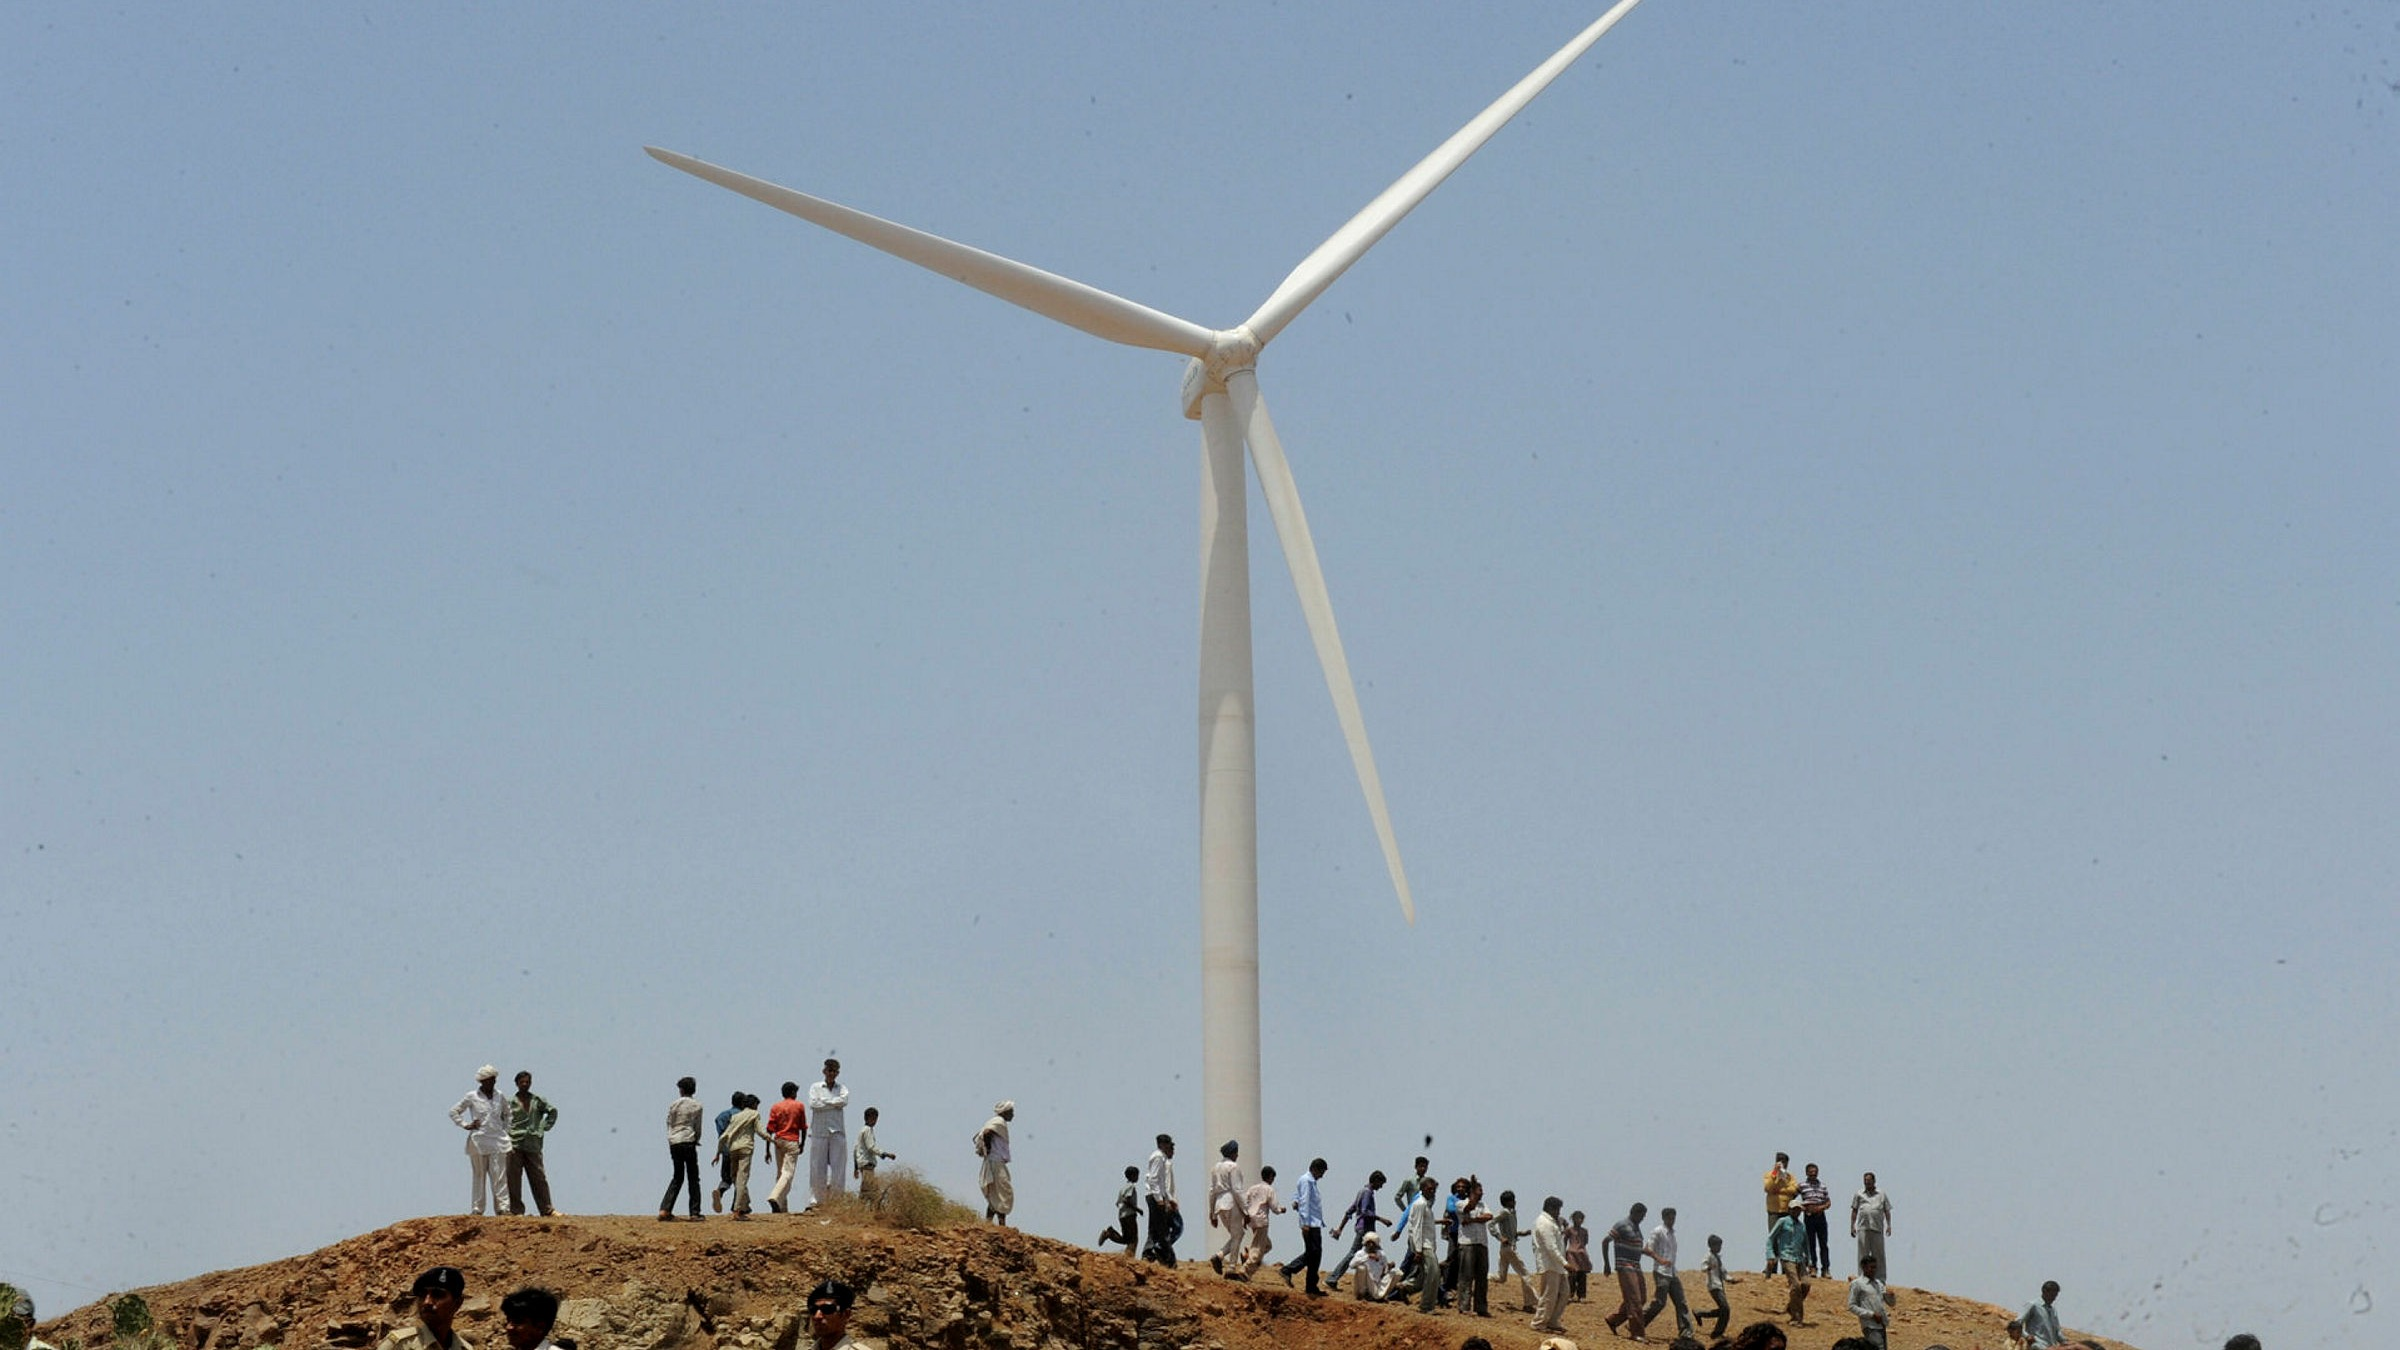 ft.com - Stephanie Findlay in New Delhi - One of India's biggest renewable energy groups joins Spac craze